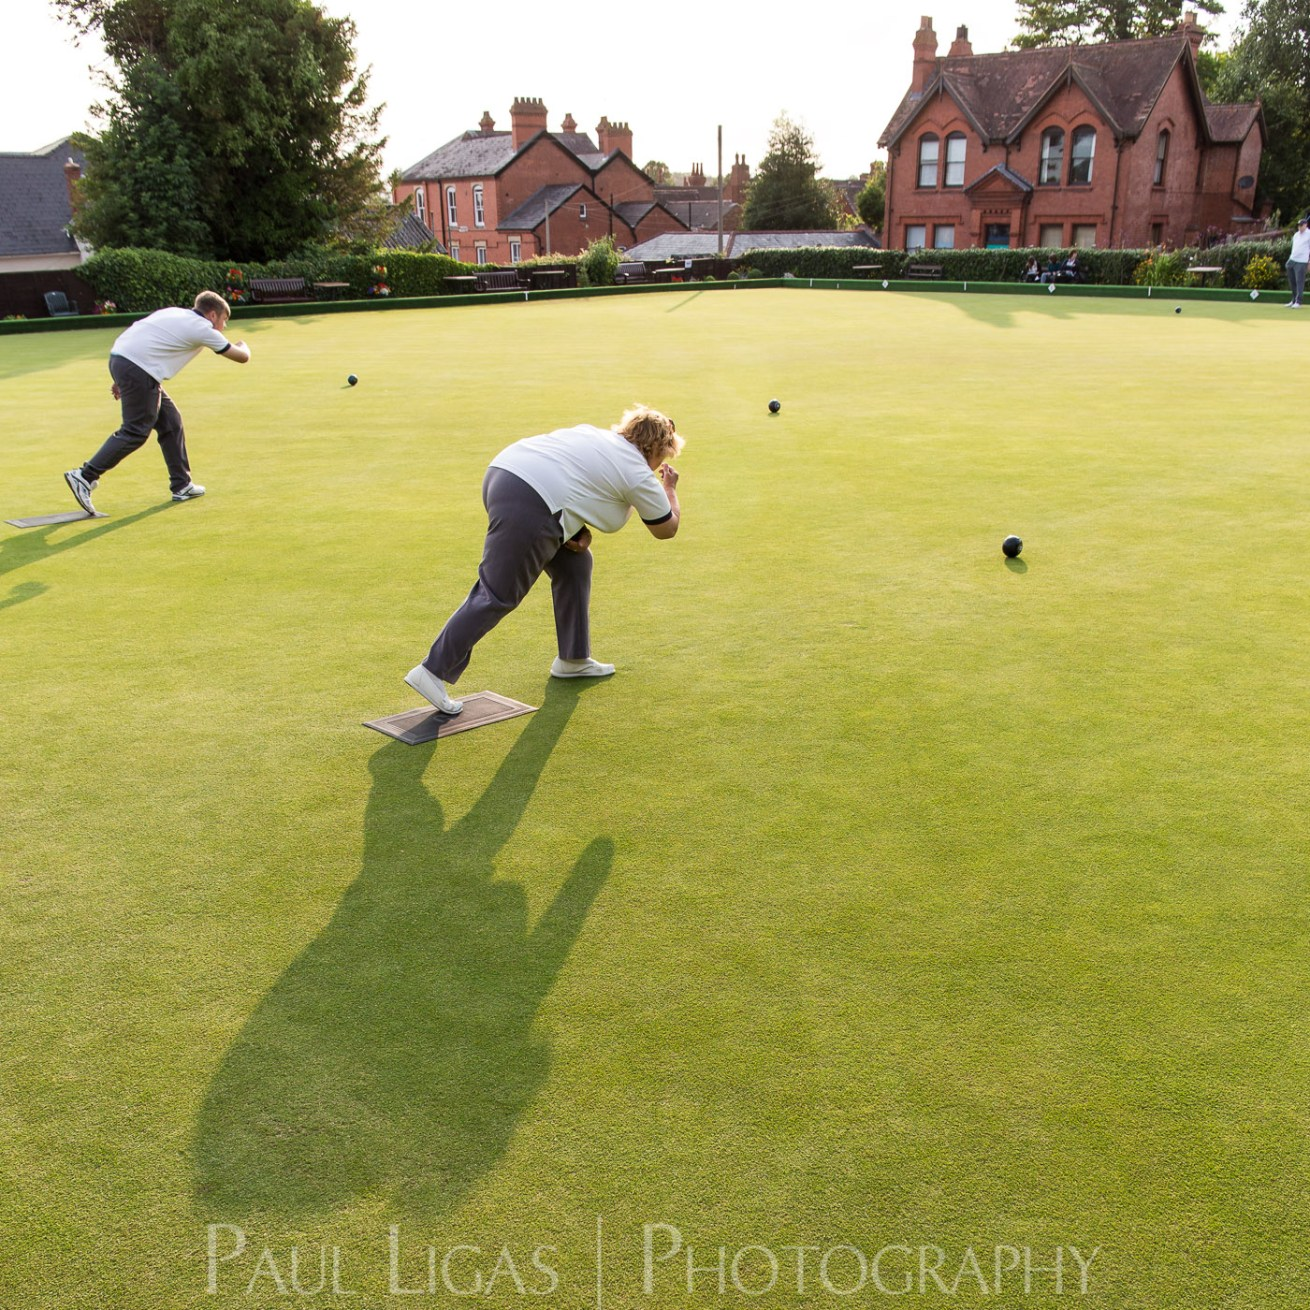 Ledbury Bowling Club, Herefordshire documentary photographer photography sports 0528